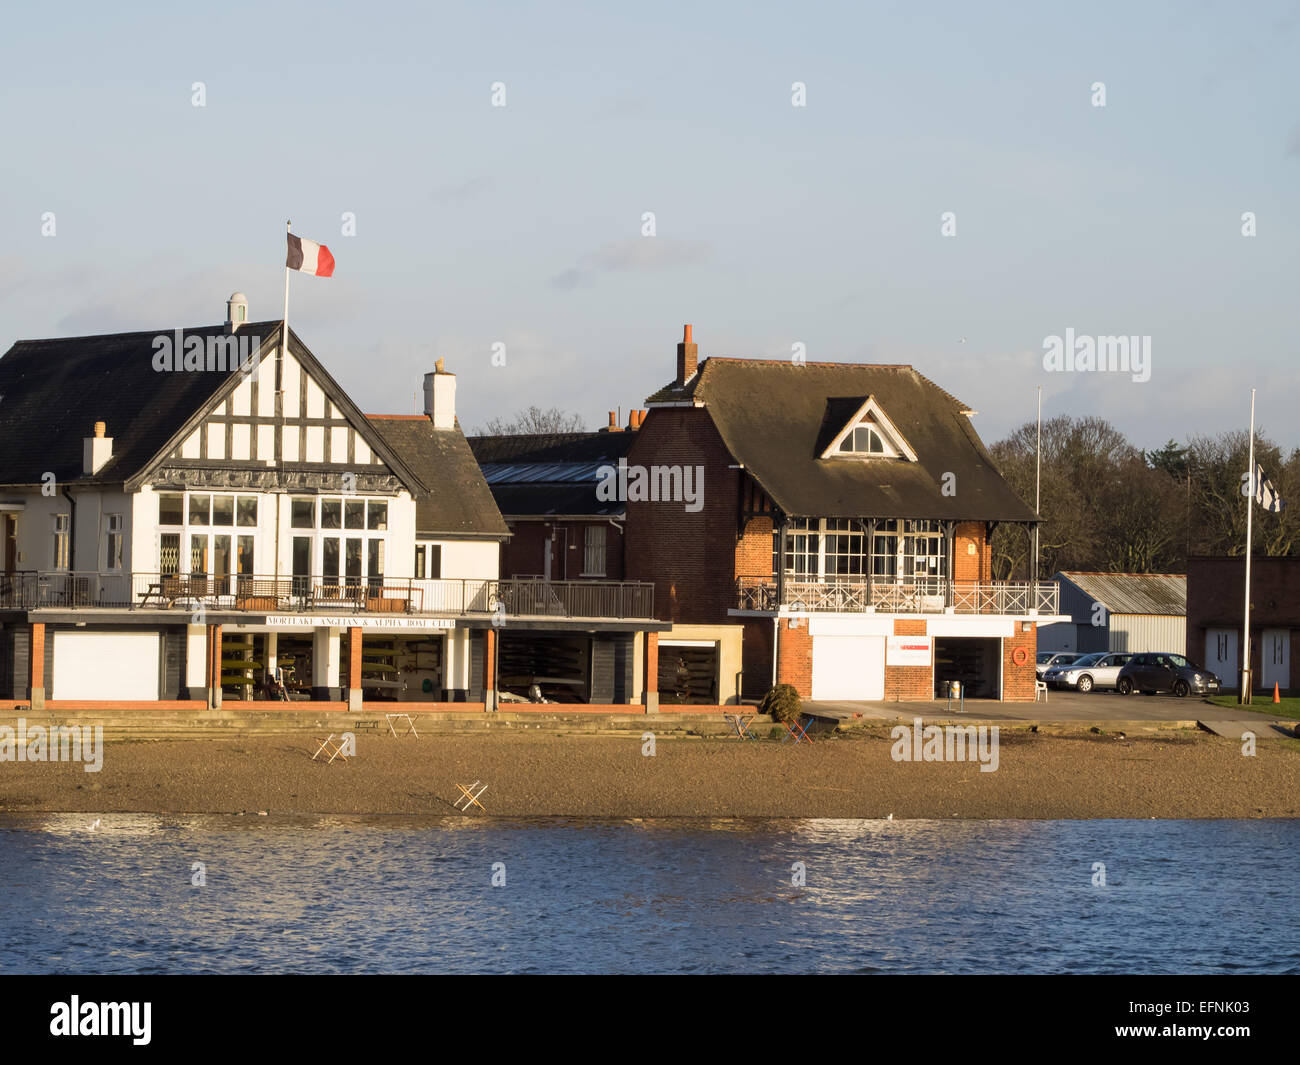 Boathouses at finish of Oxford and Cambridge University Boat race, Chiswick, River Thames - Stock Image